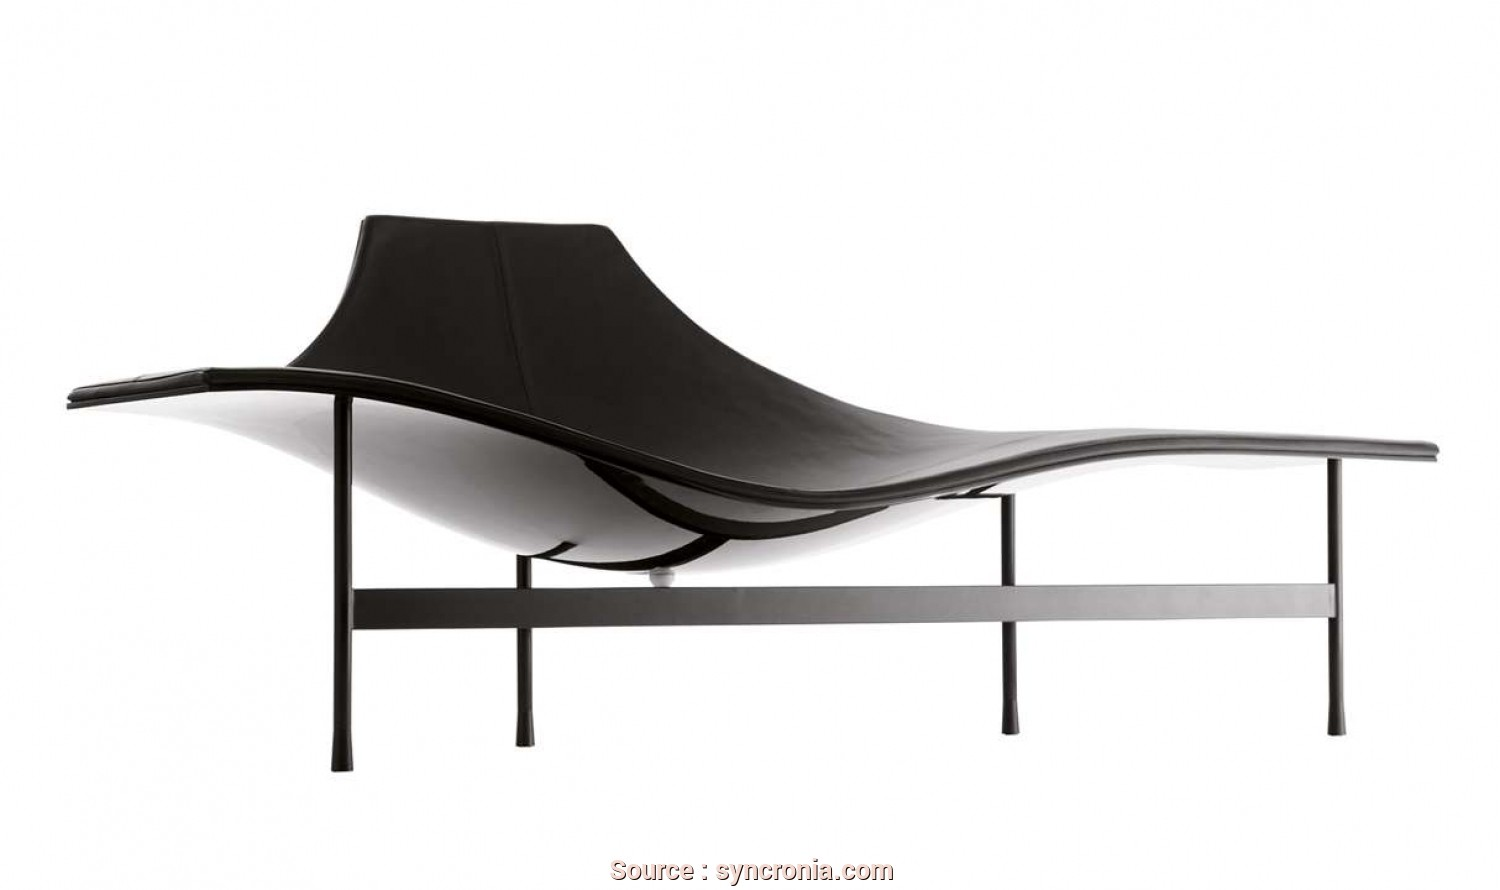 Chaise Longue, 3D, Minimalista Terminal 1, Italia-Download 3D Models Chaises Longues